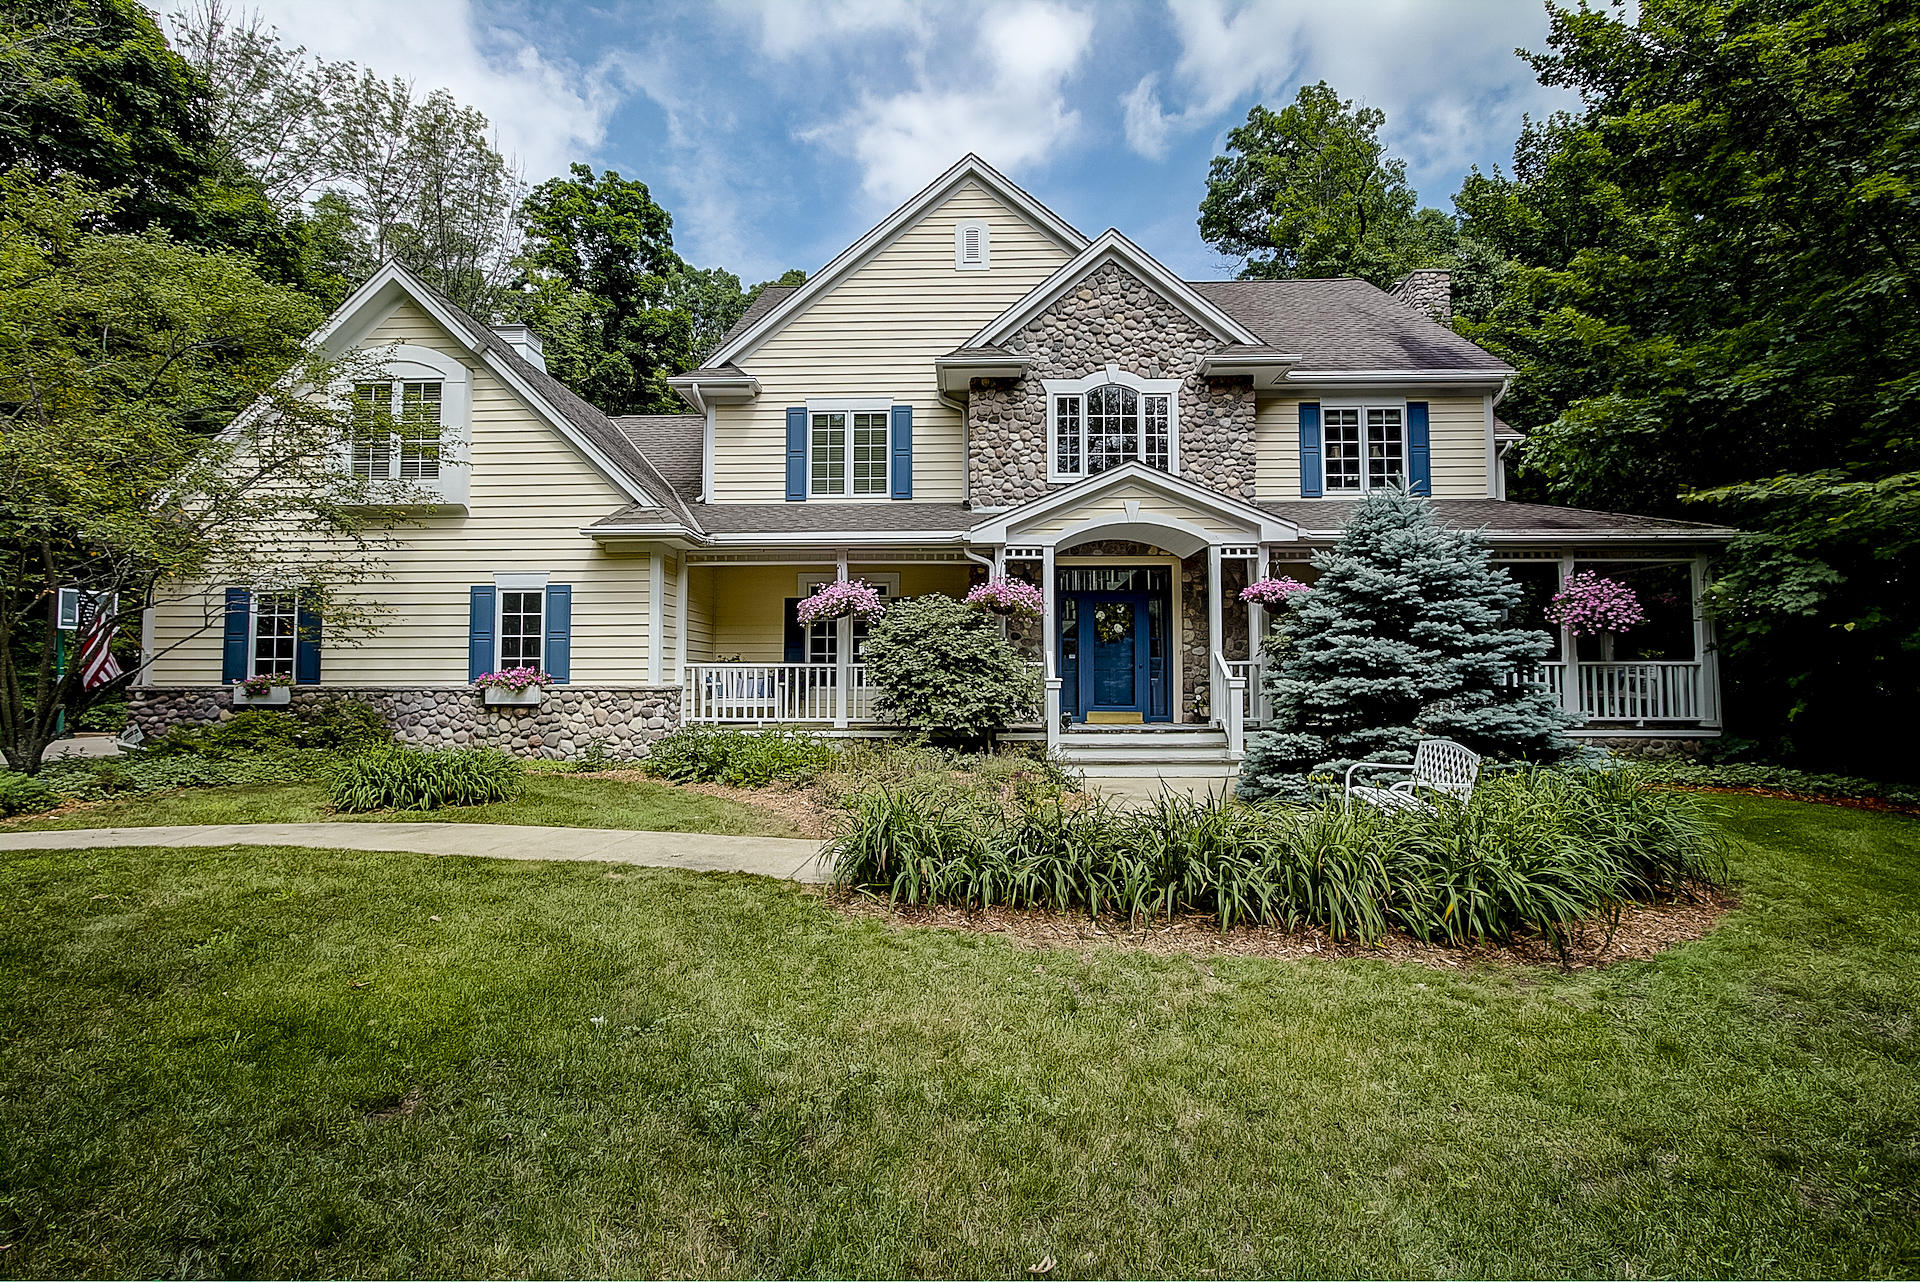 W232S5970 Charles Dr, Waukesha, Wisconsin 53189, 5 Bedrooms Bedrooms, ,4 BathroomsBathrooms,Single-Family,For Sale,Charles Dr,1610113